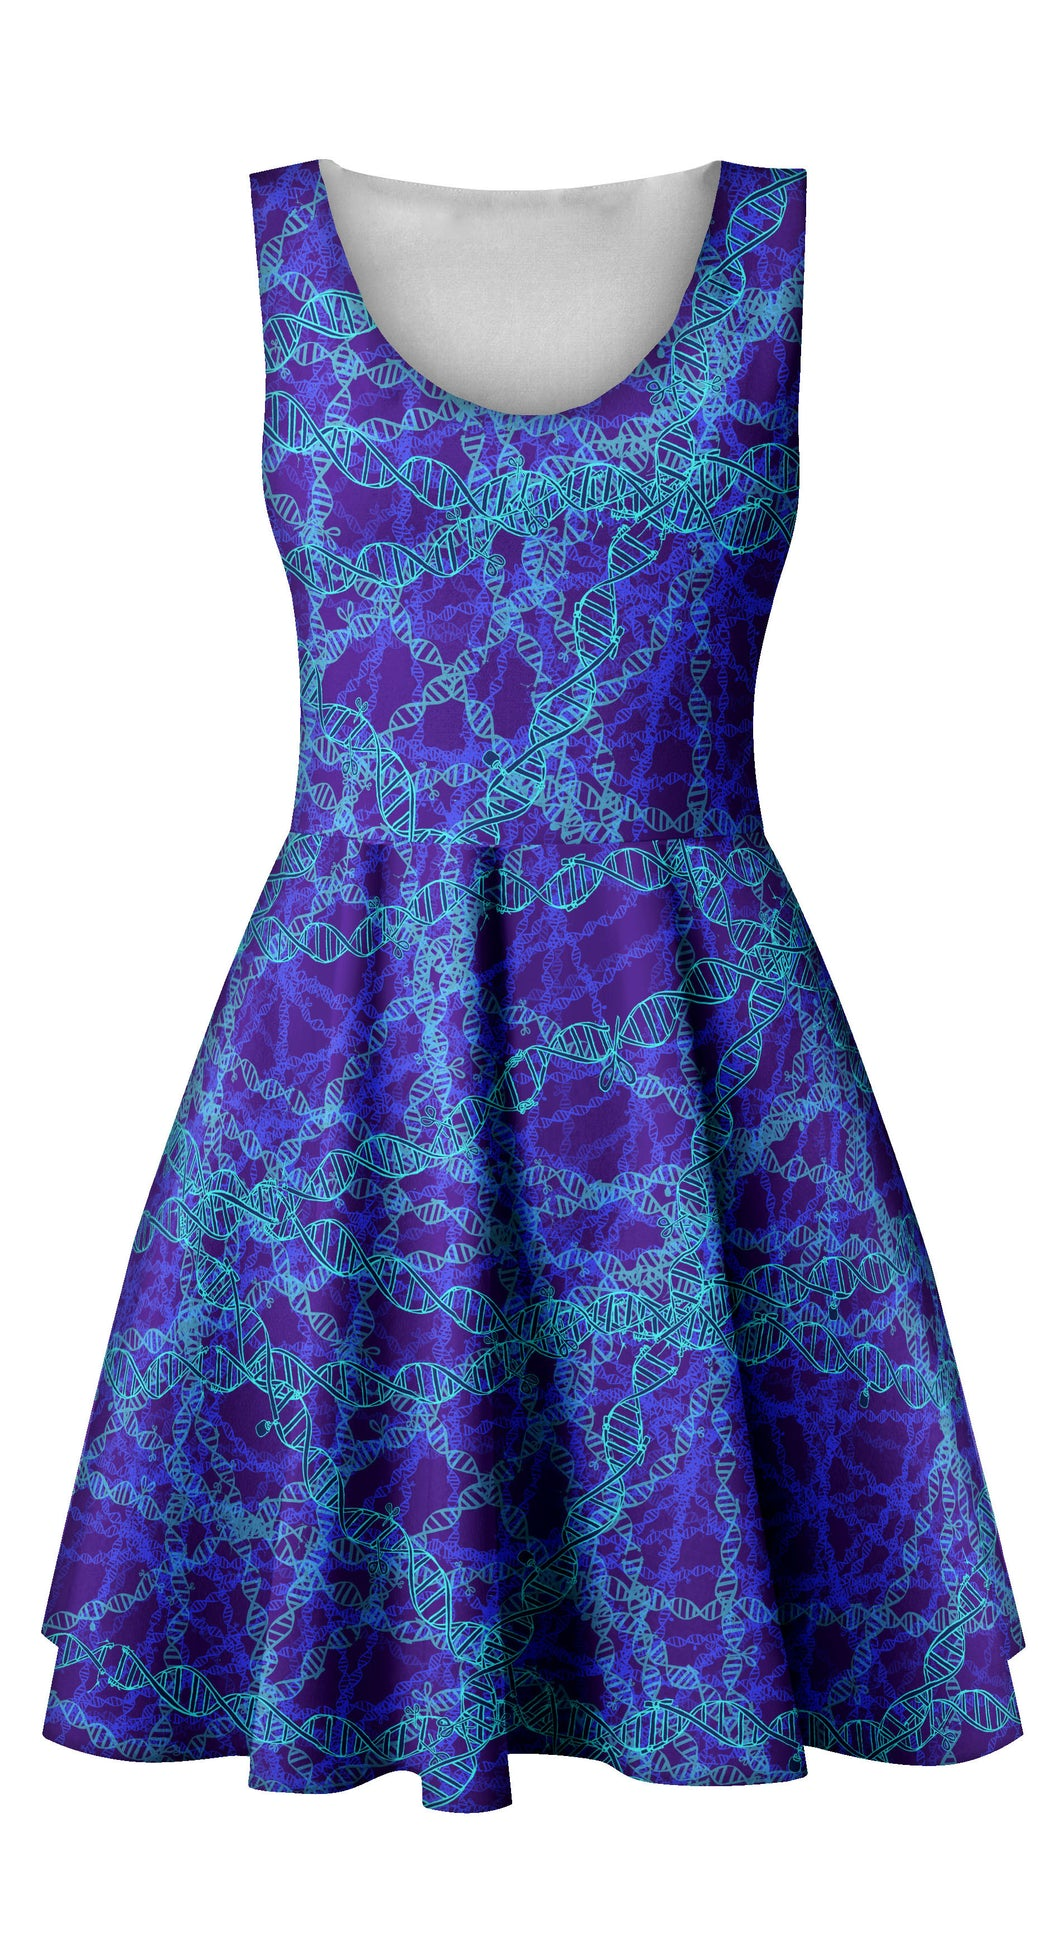 Blue gene editing midi scoop dress